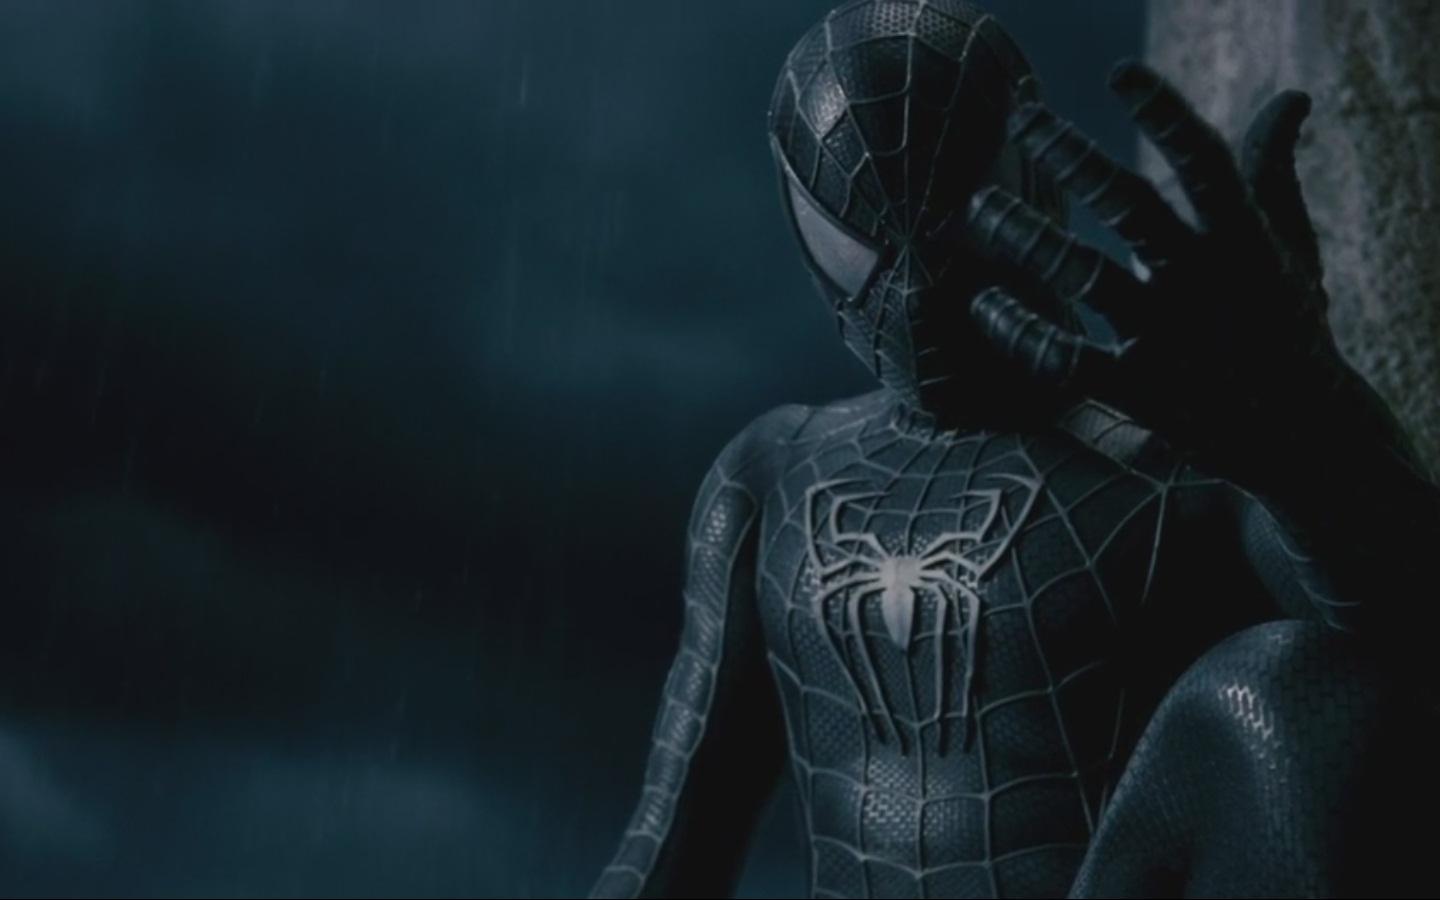 Spider Man Images Spider Man Hd Wallpaper And Background Photos